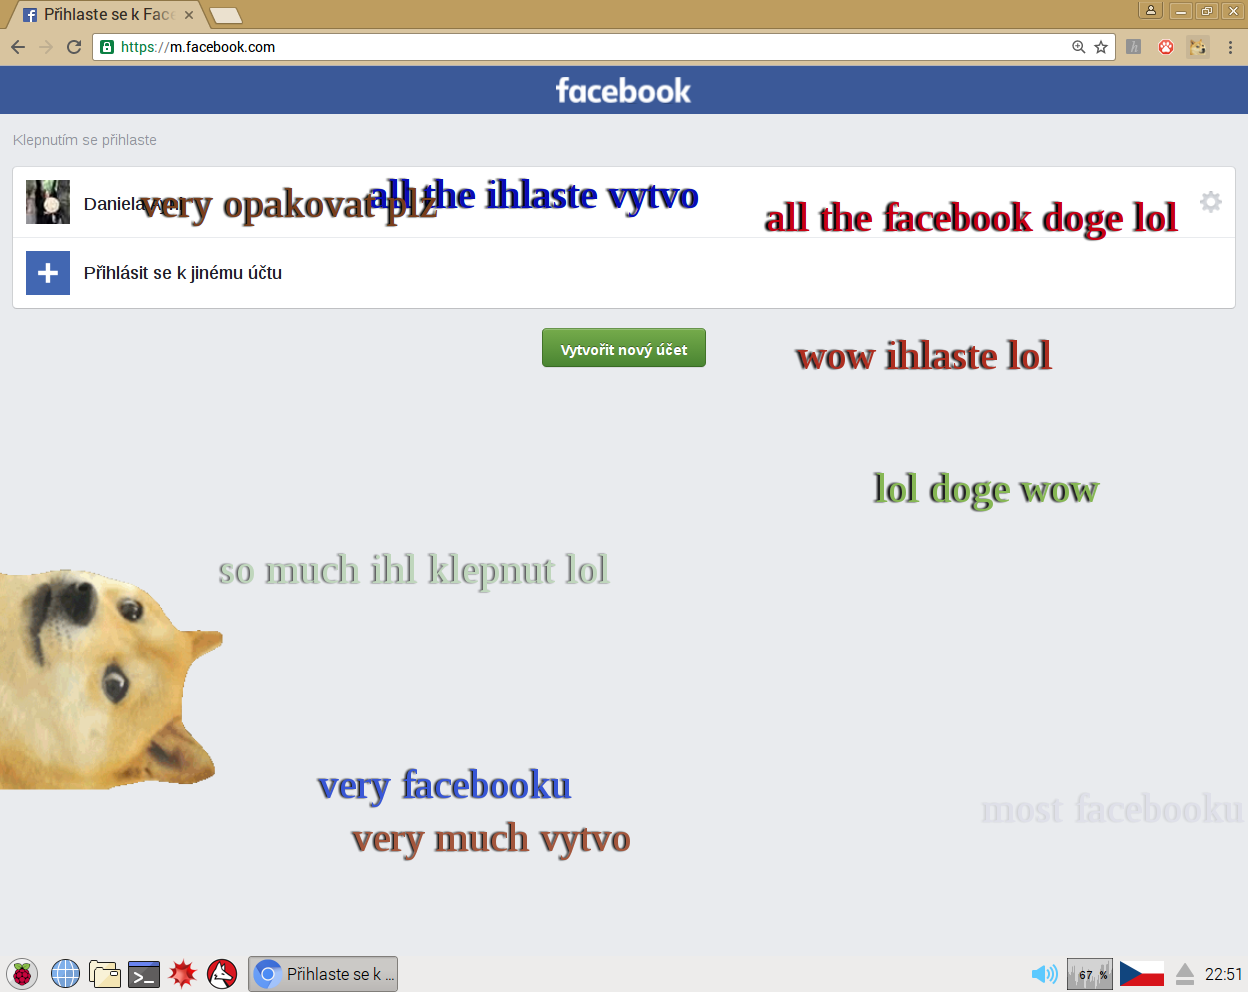 So doge, much cool, such spam